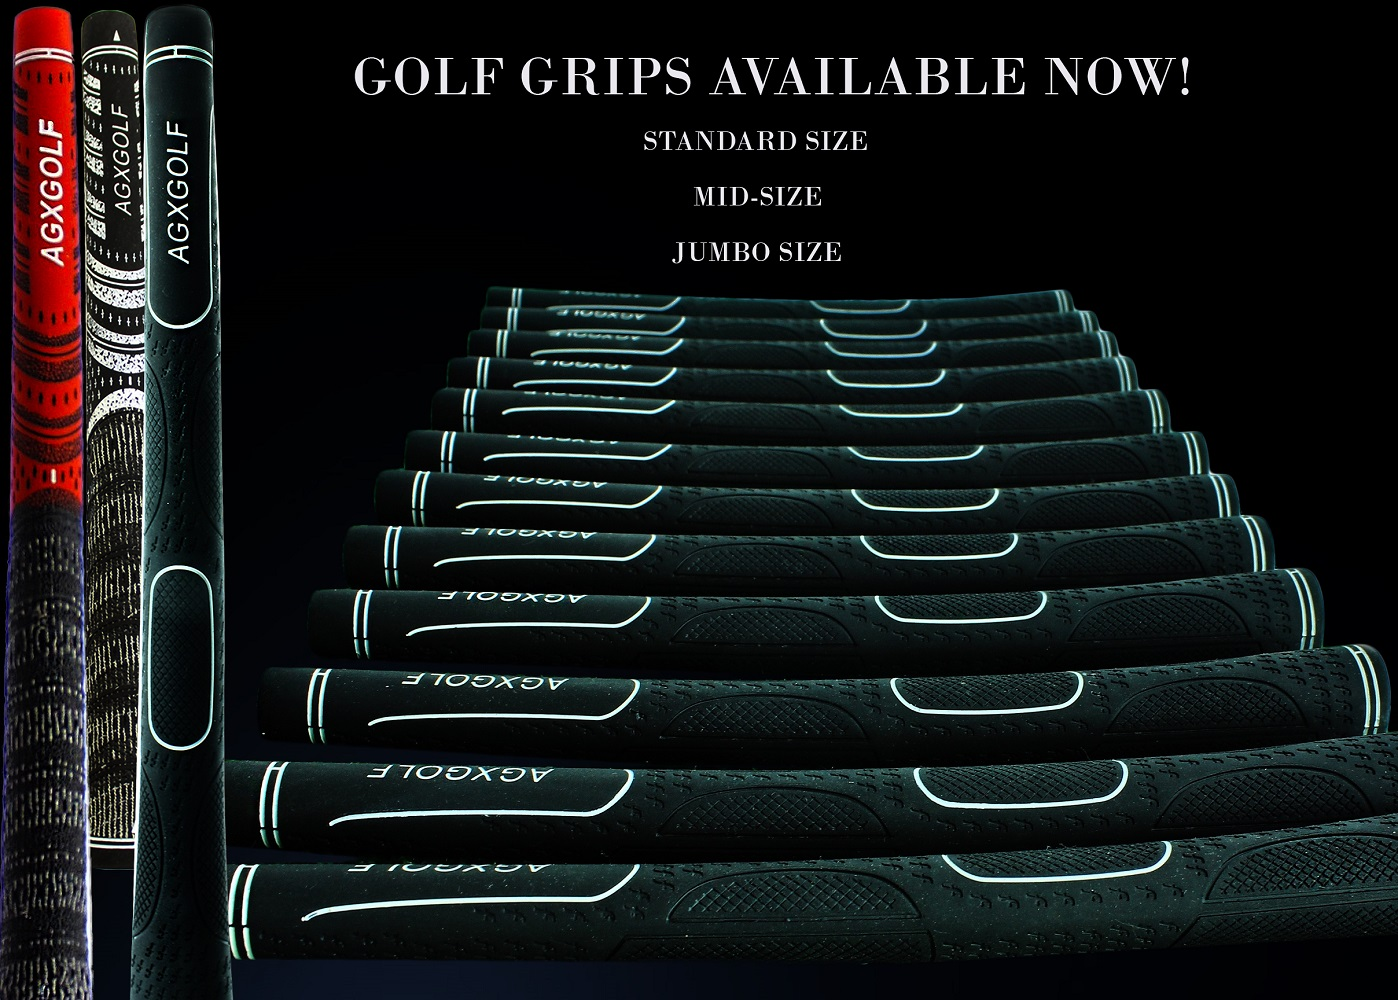 GET A GRIP AND IMPROVE YOUR GAME